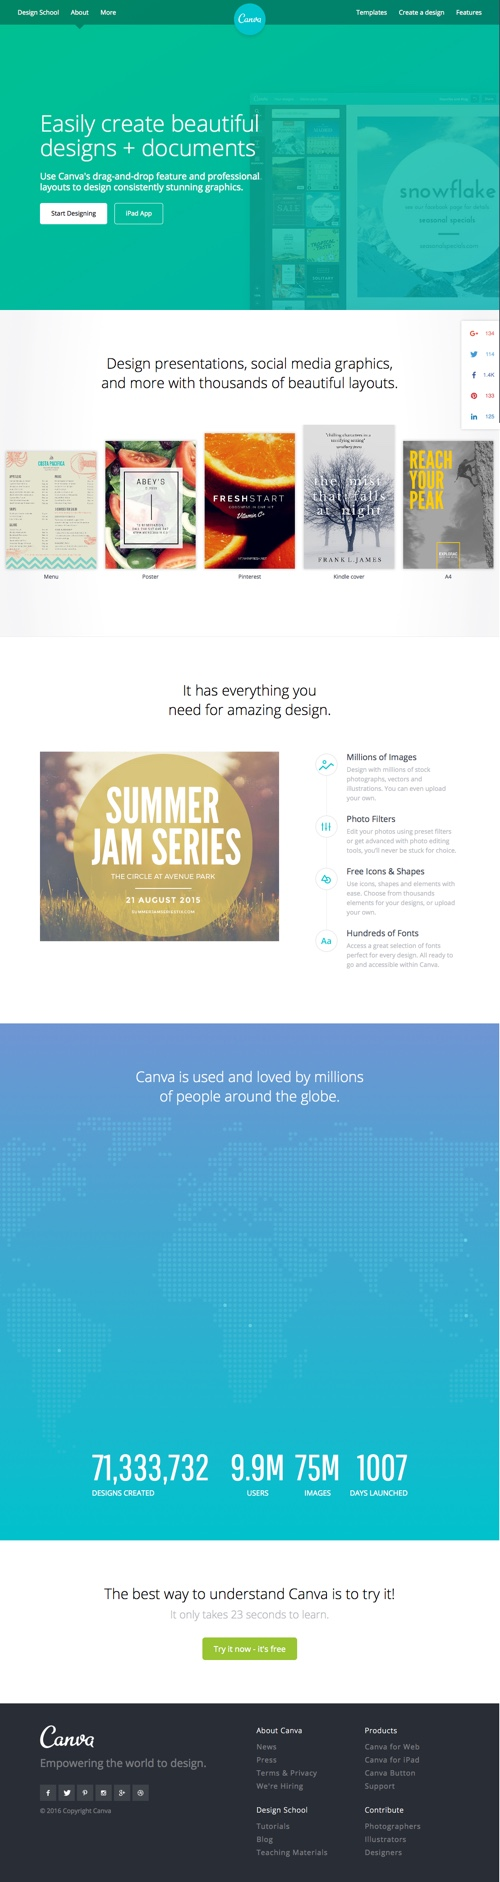 about-page-inspiration-8-canva